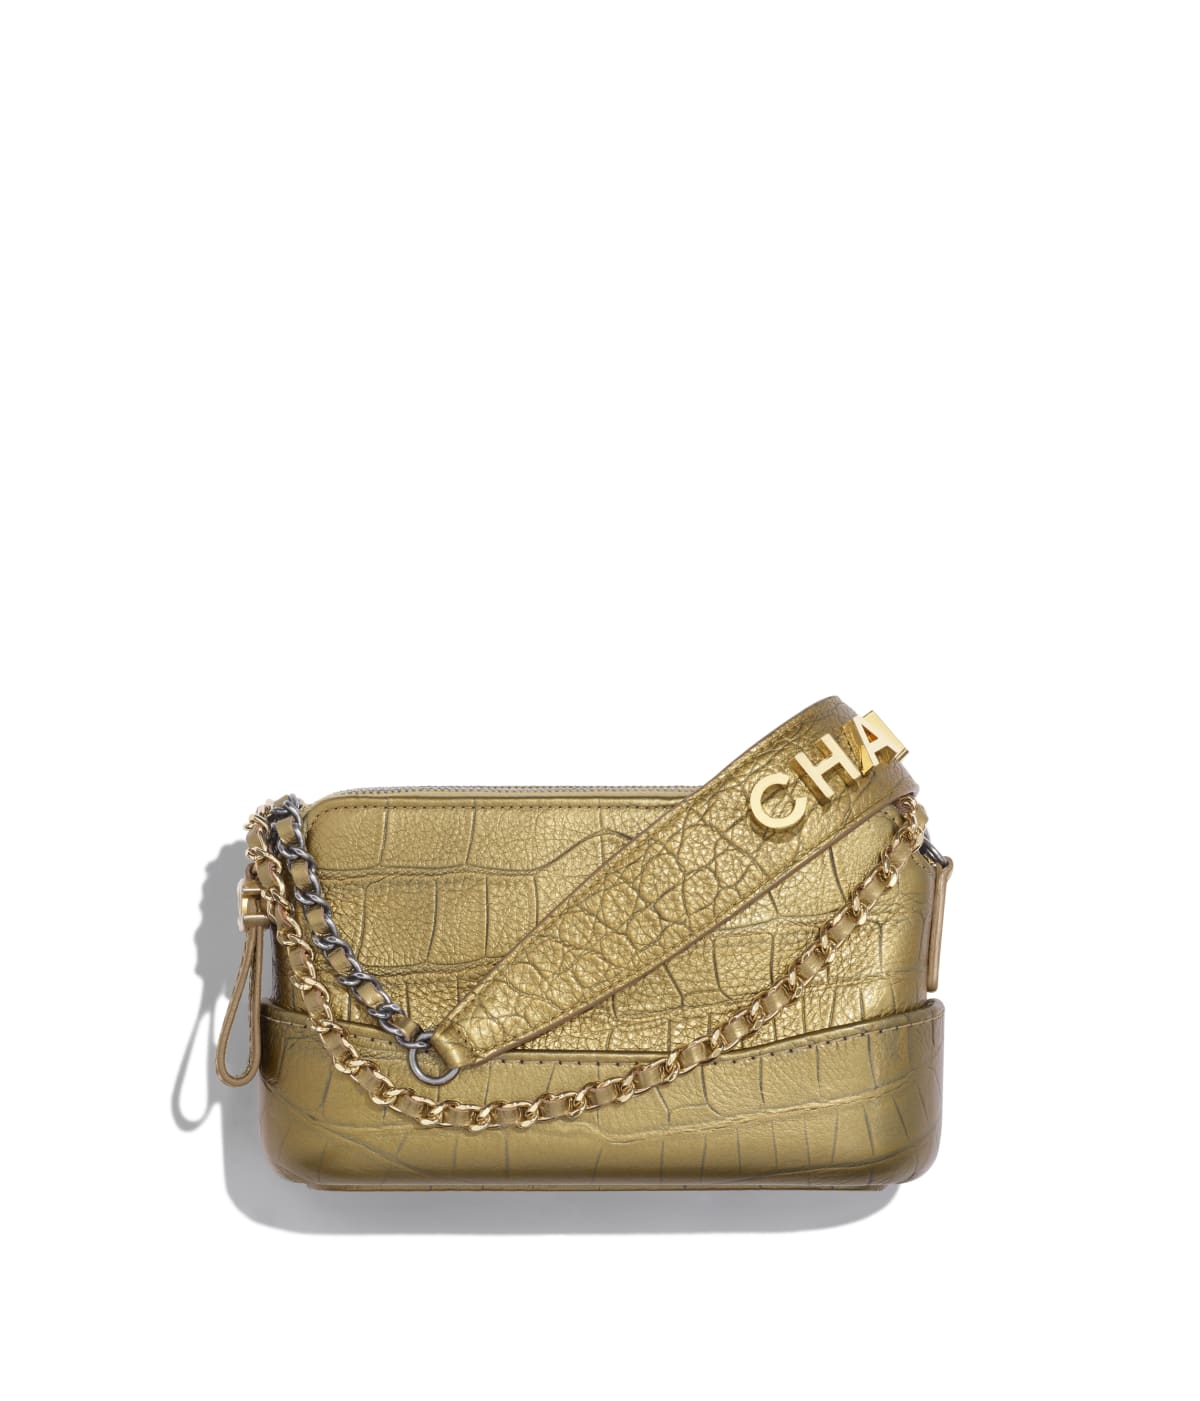 952bdb3289721e Clutches with Chain - Small Leather Goods - CHANEL